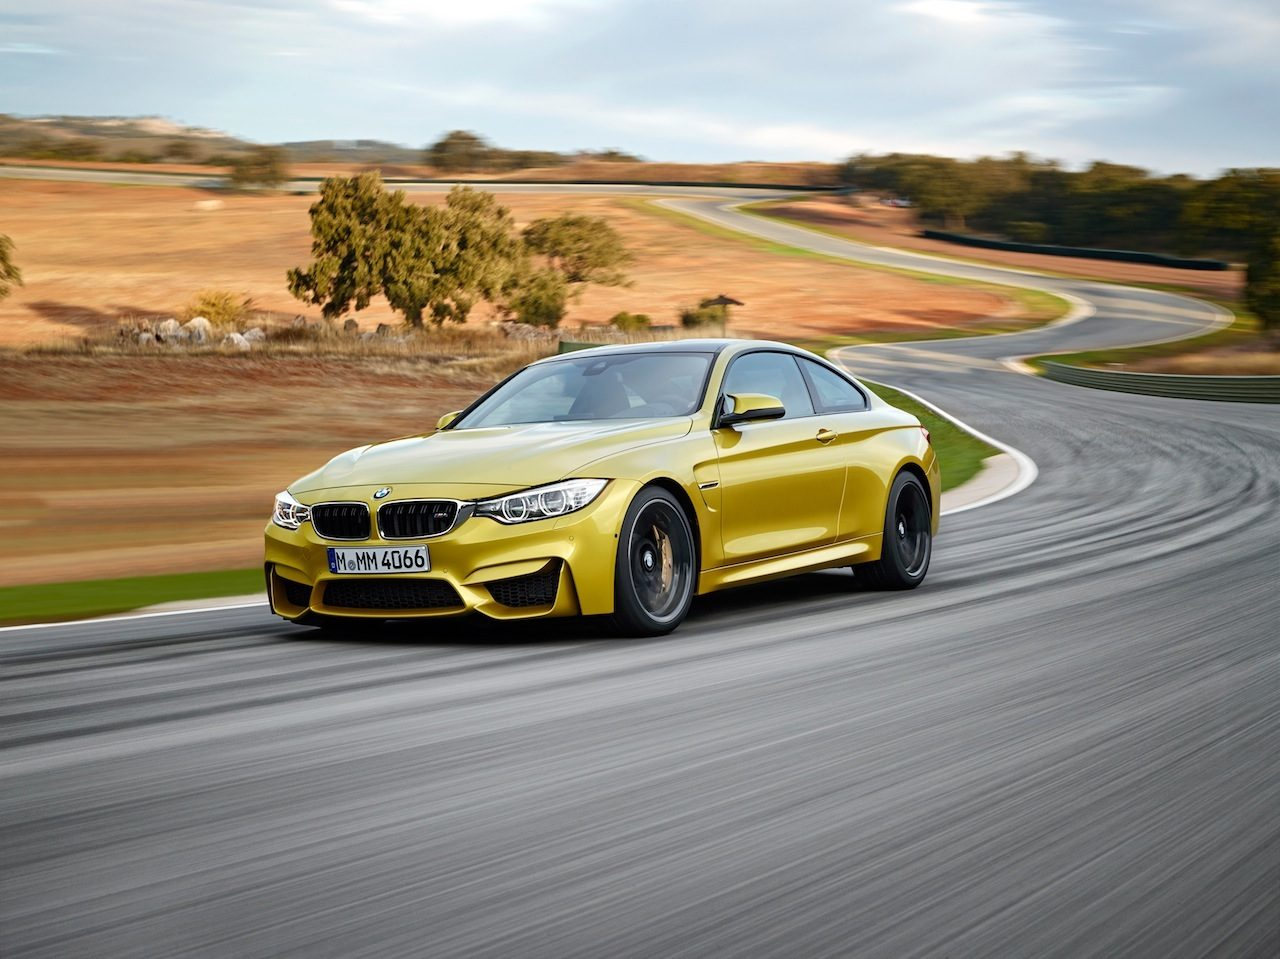 BMW-M4-Coupe-F82-01.jpg